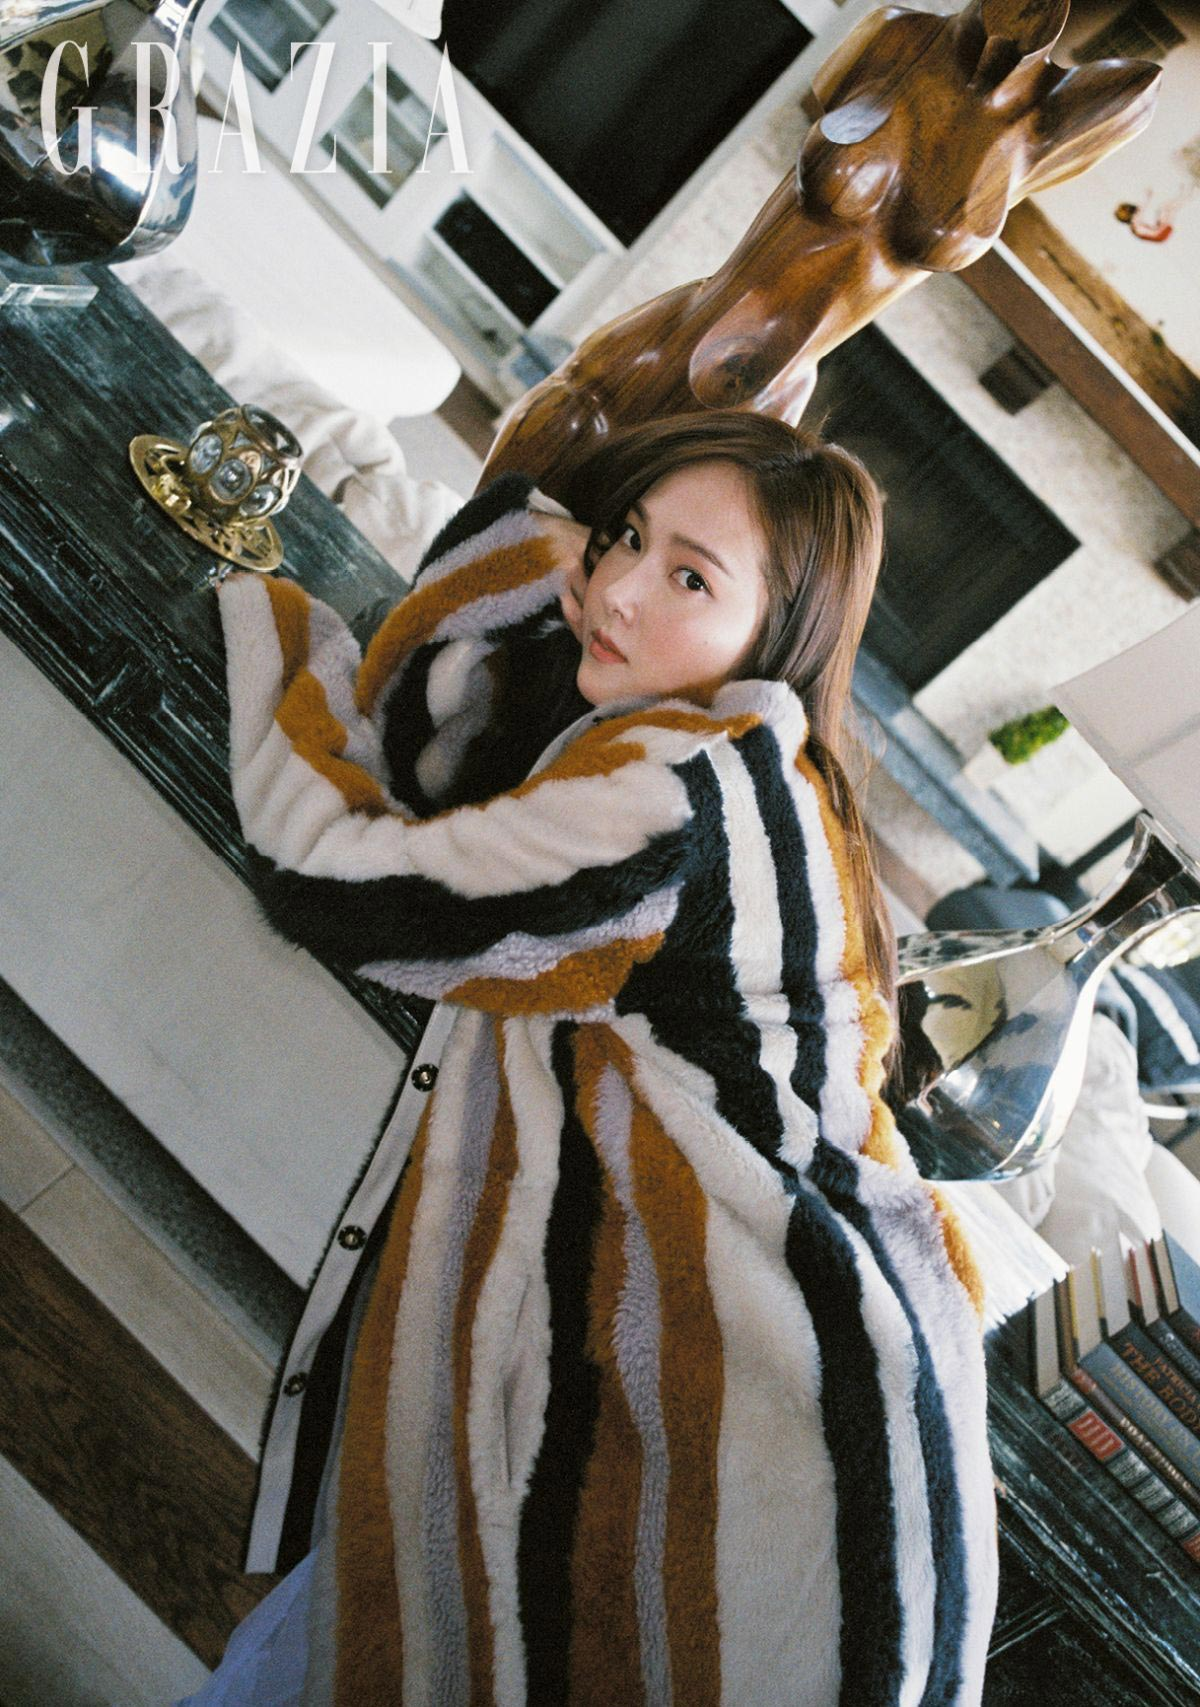 Jessica Jung in Grazia Magazine, Korea October 2018 1